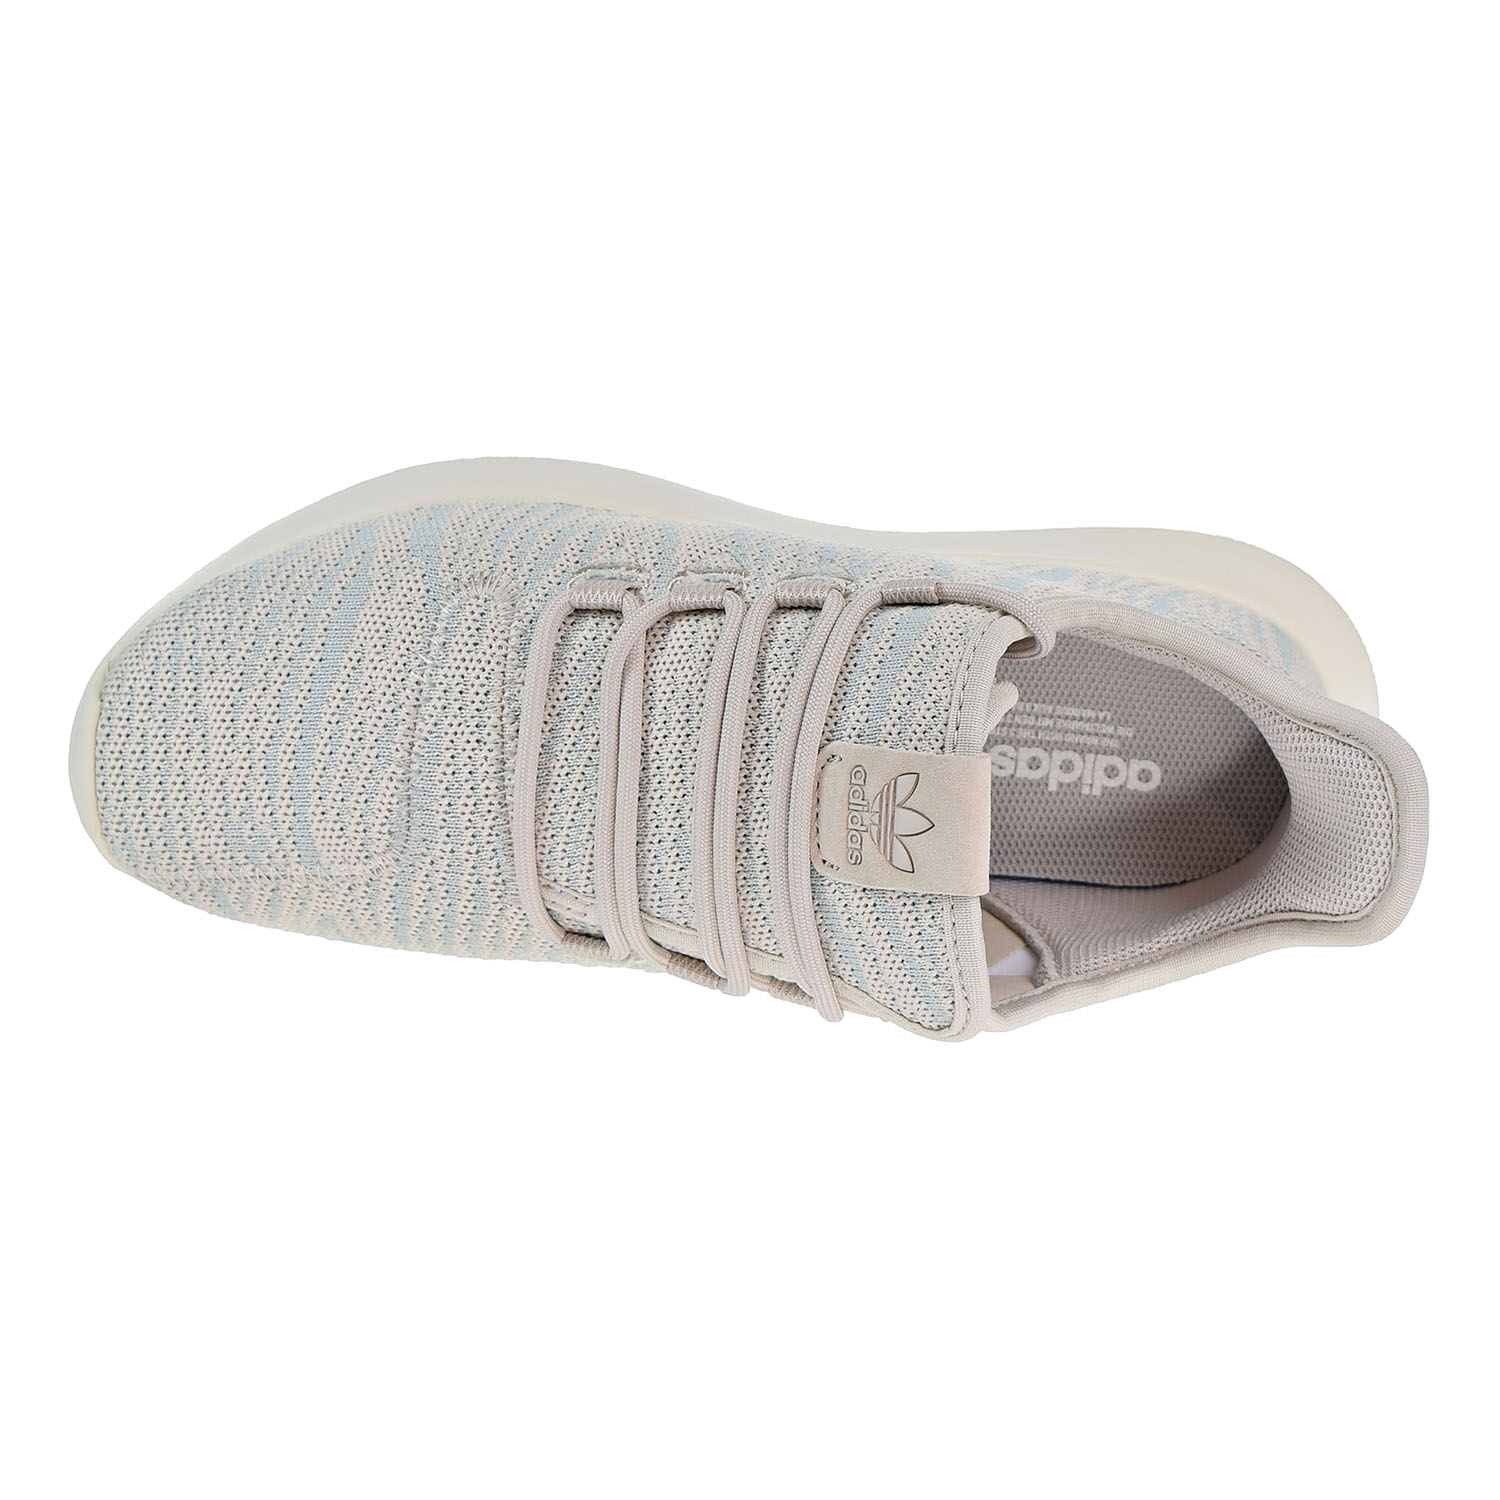 7f05bb50dad722 Adidas Tubular Shadow Women s Shoes Clear Brown Ash Green Off White cq2463